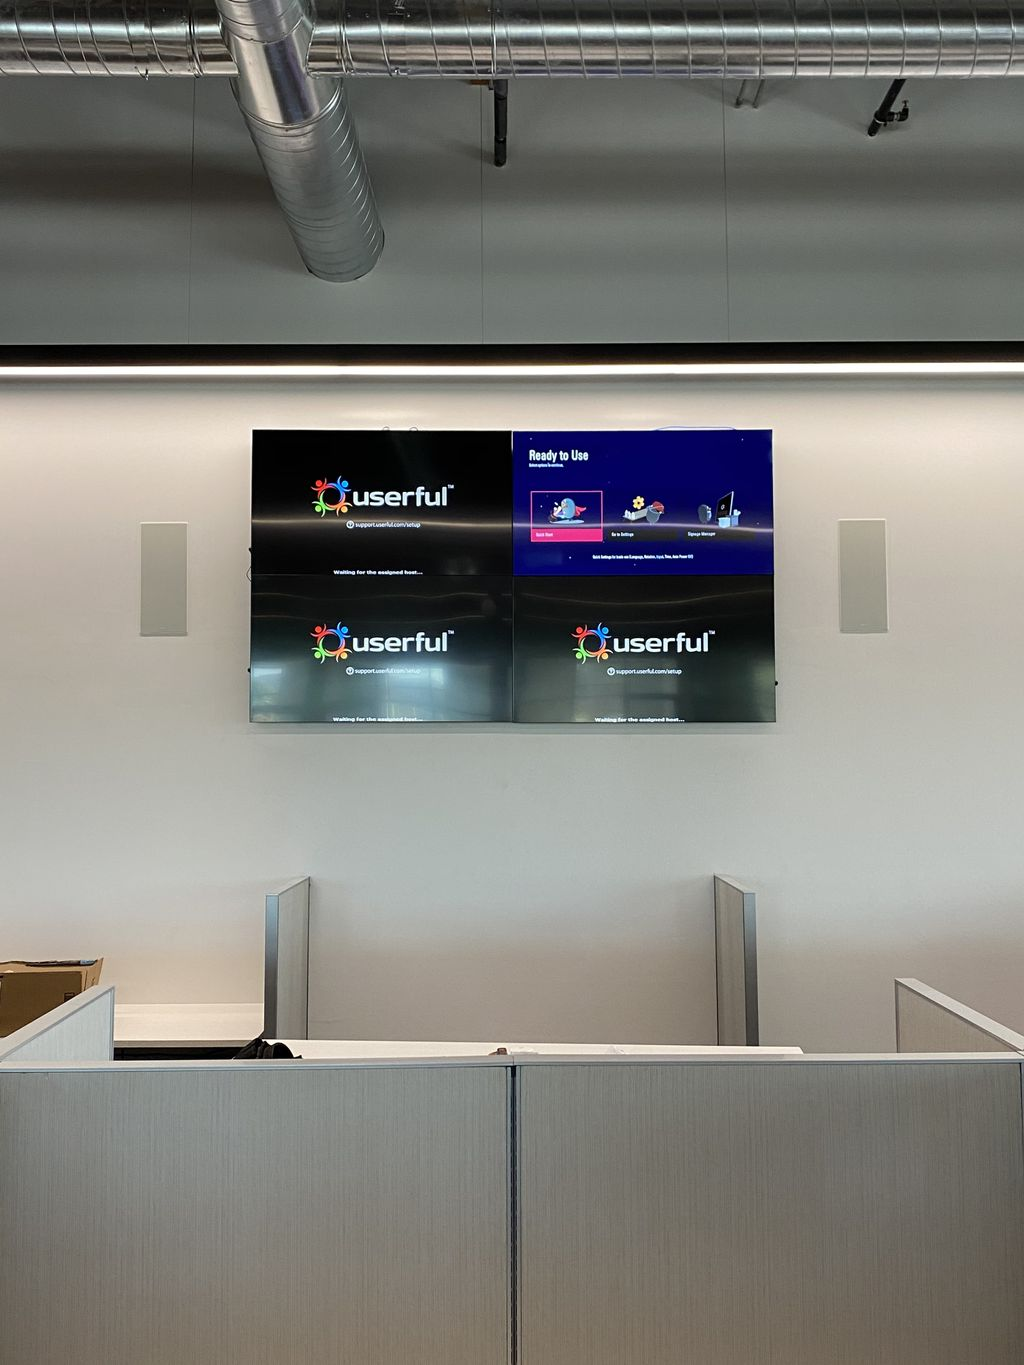 8ft x 4 ft Video Wall